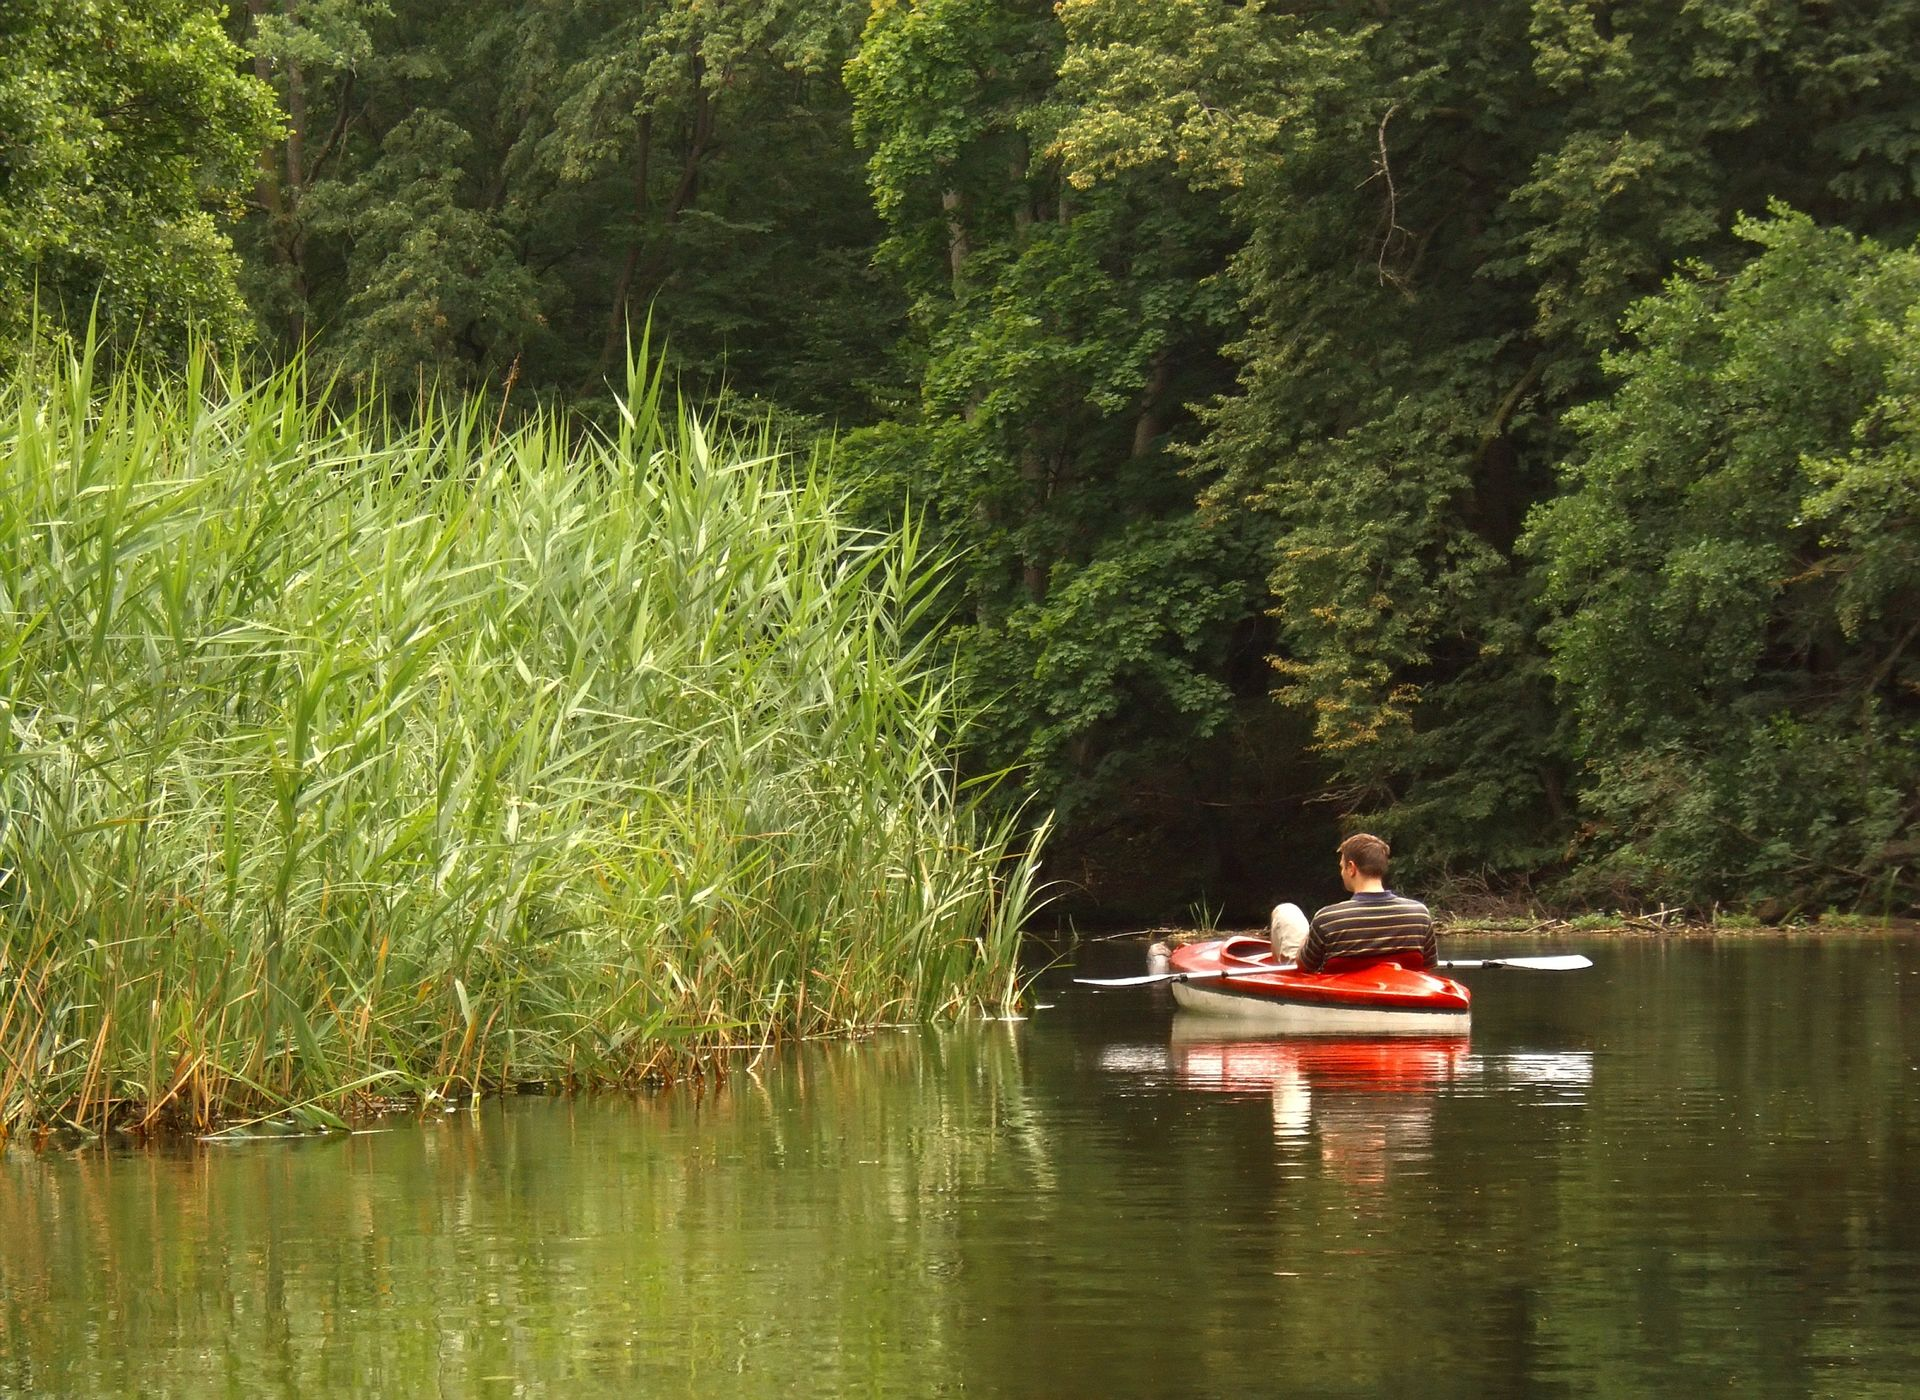 Canoeing on the Recknitz